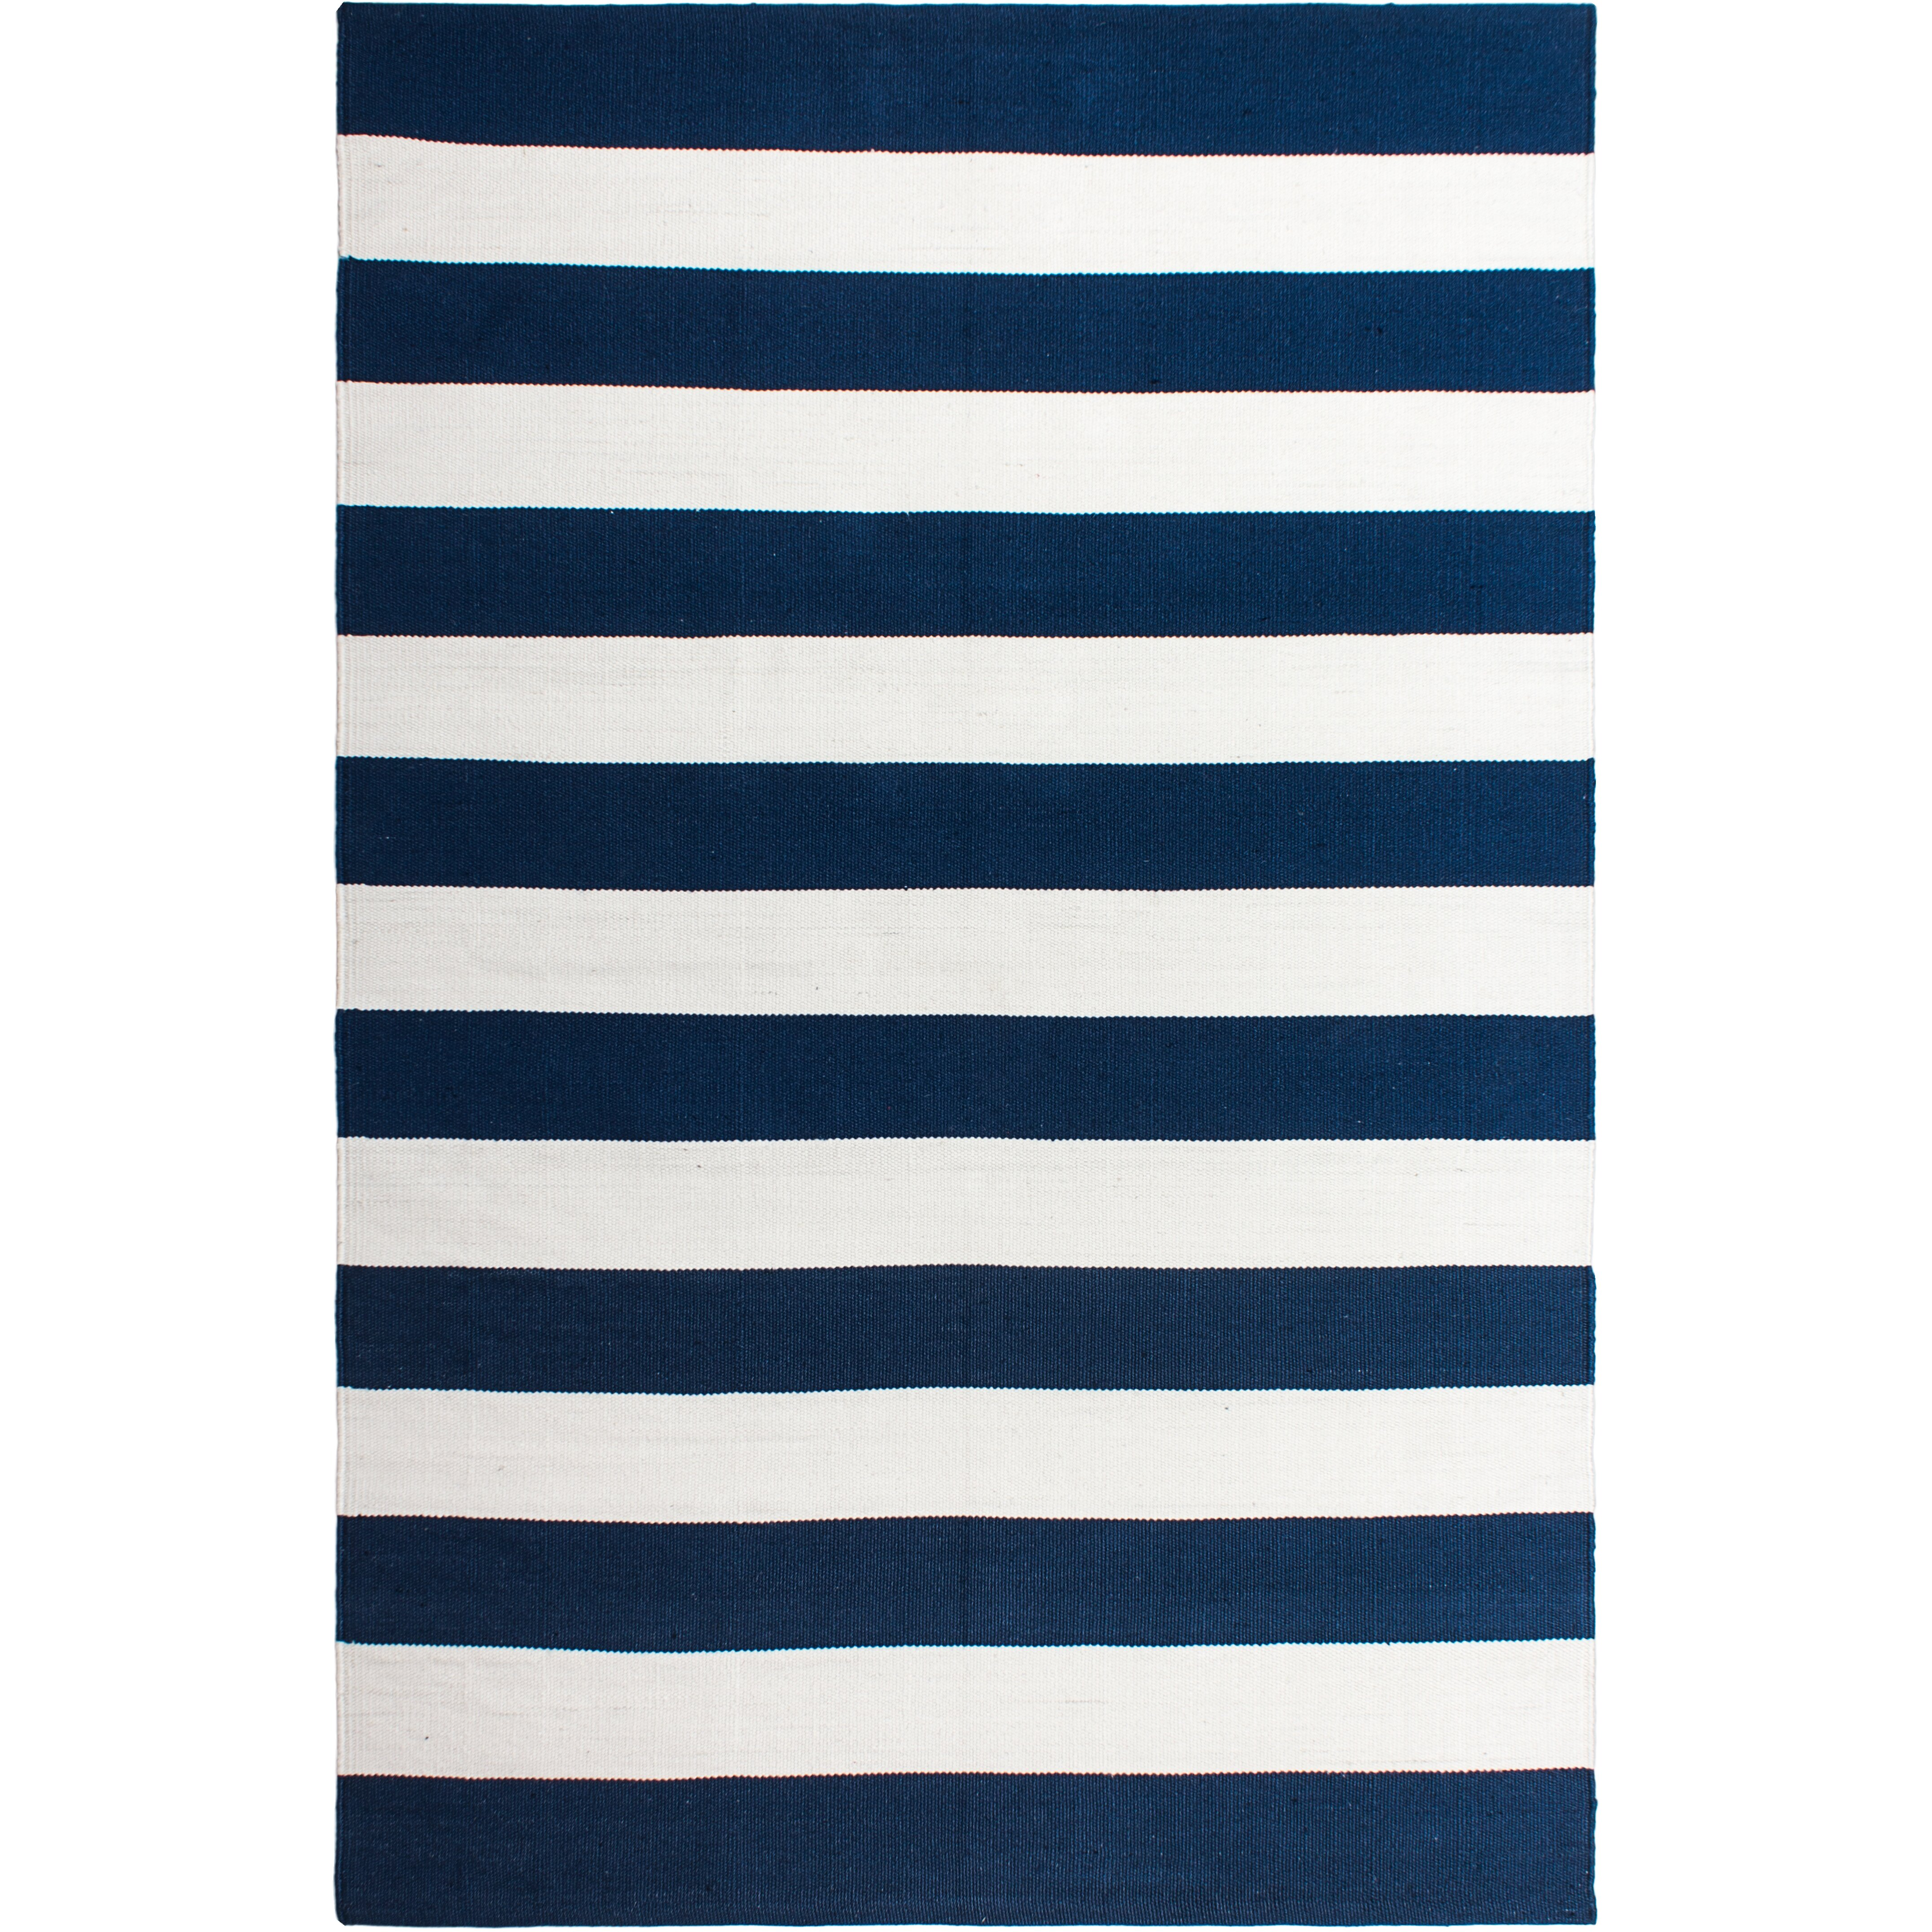 Blue And White Outdoor Rug Blue And White Geometric